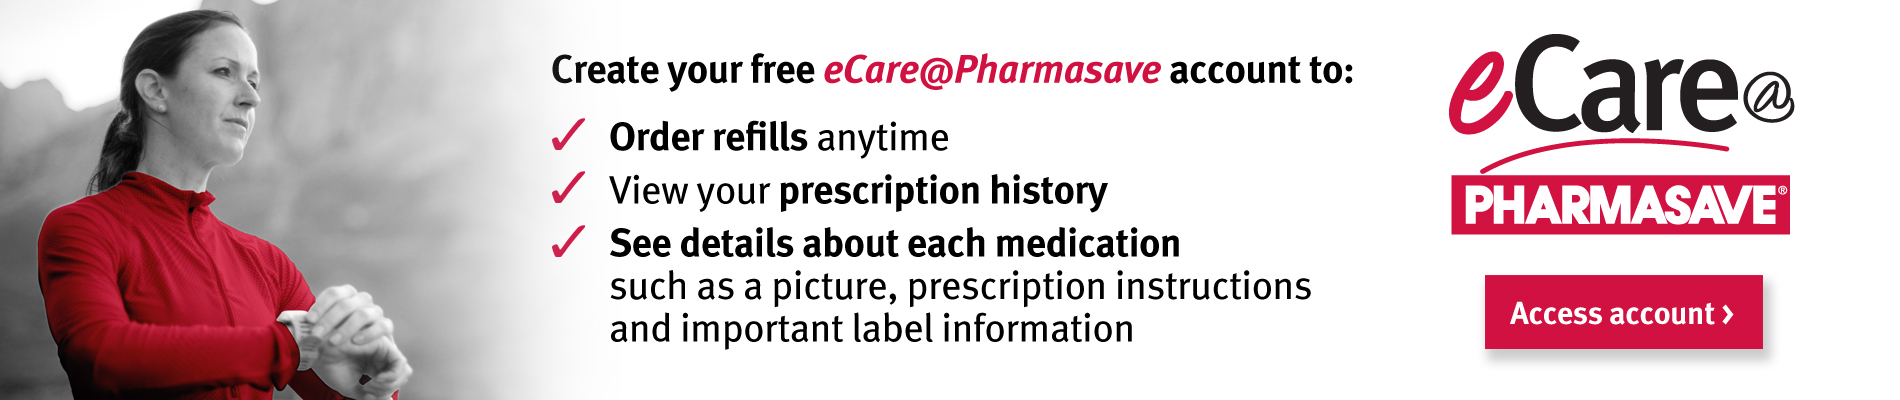 Download our eCare@Pharmasave app to order or refills your prescriptions.